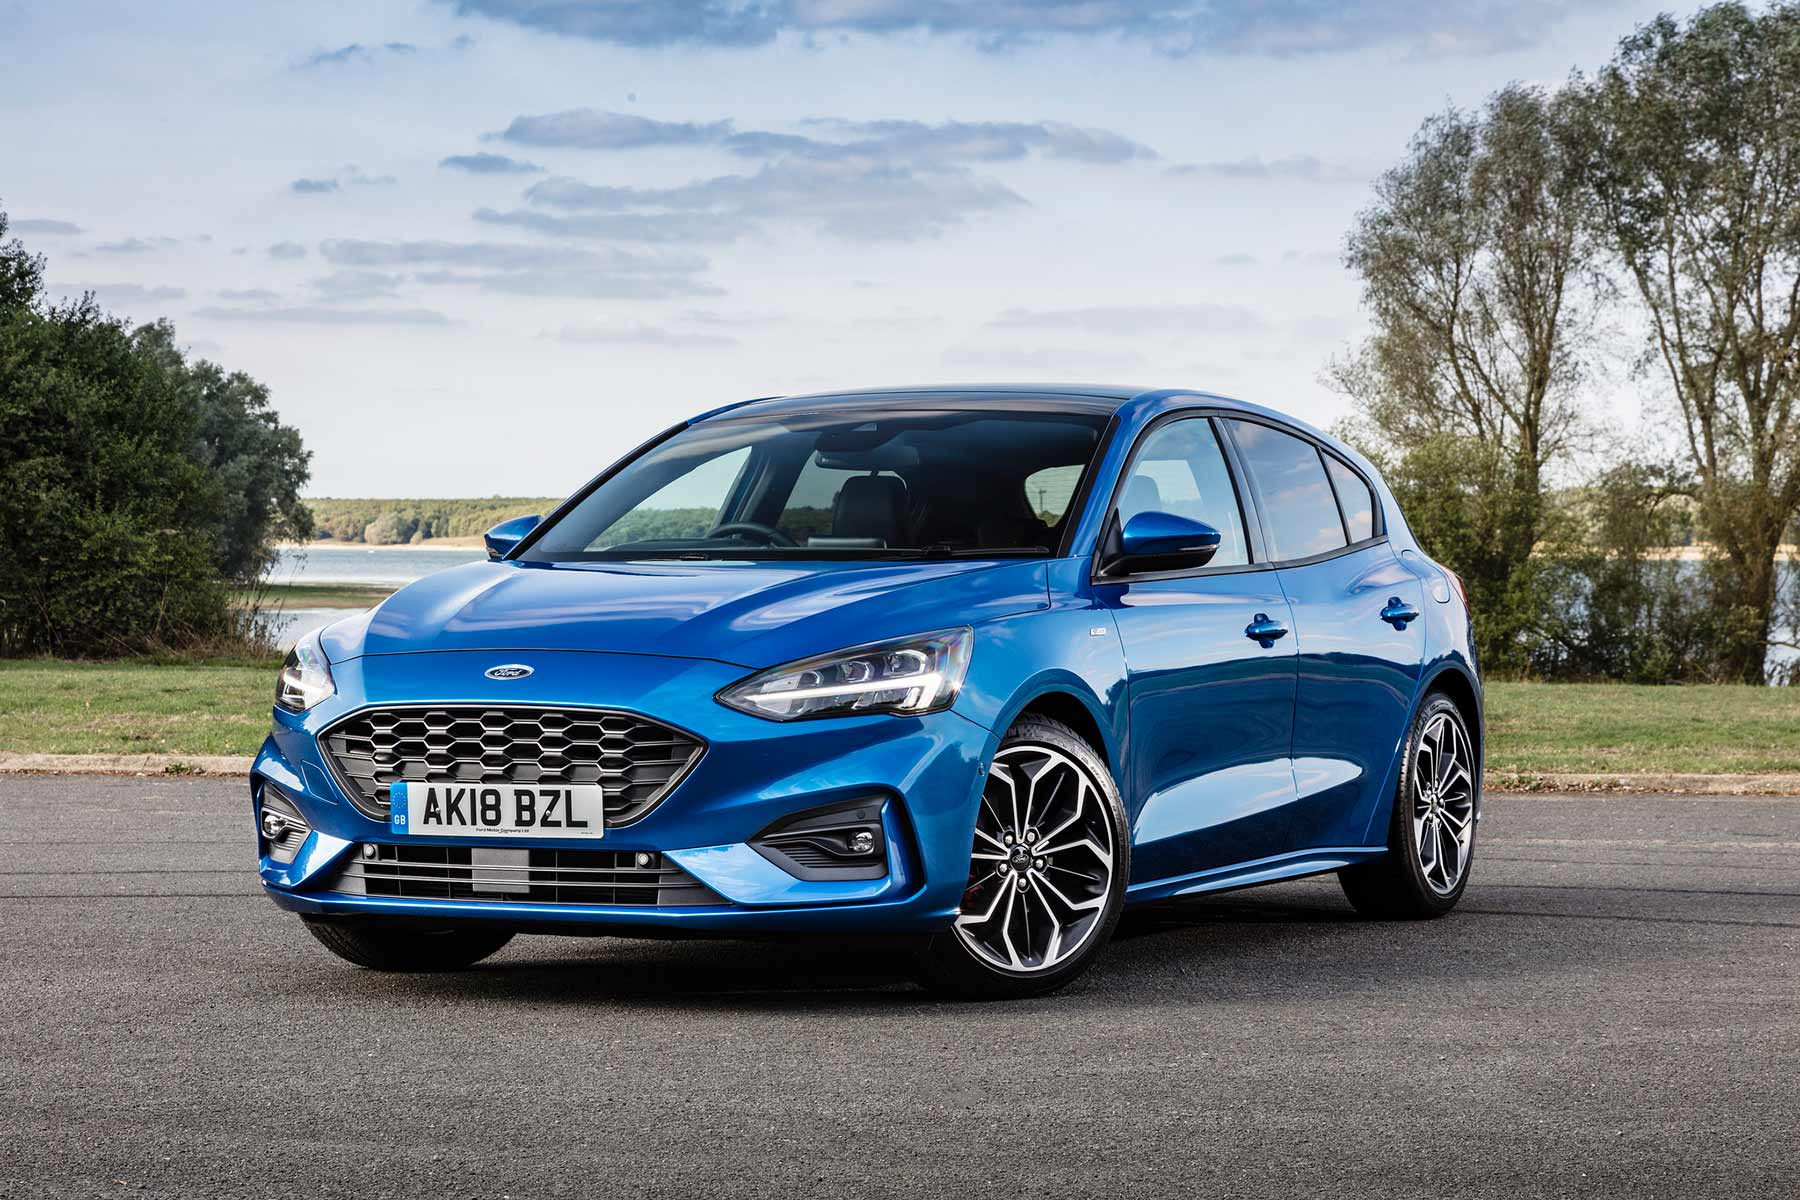 Black Friday Wagon Deals >> The best Black Friday new car deals for 2018 | Motoring Research